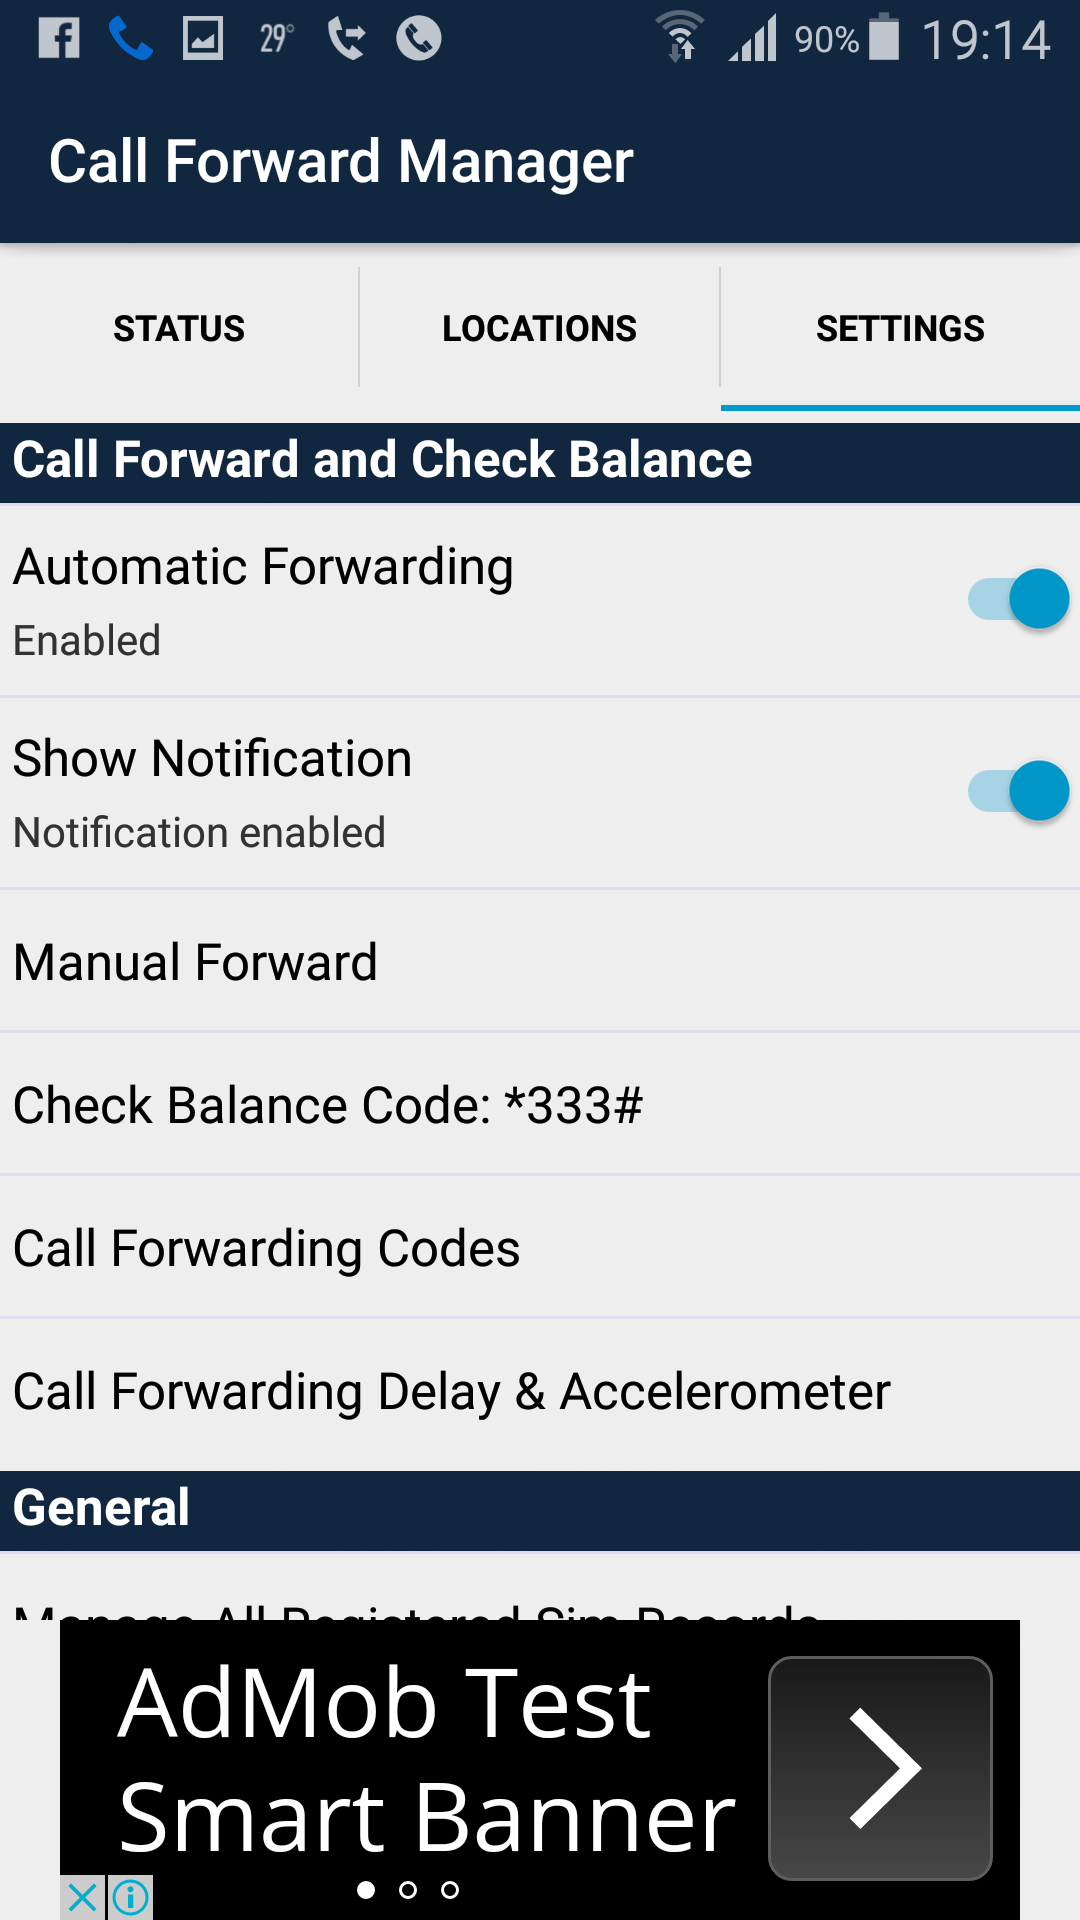 Amazon com: Call Forward Manager: Appstore for Android